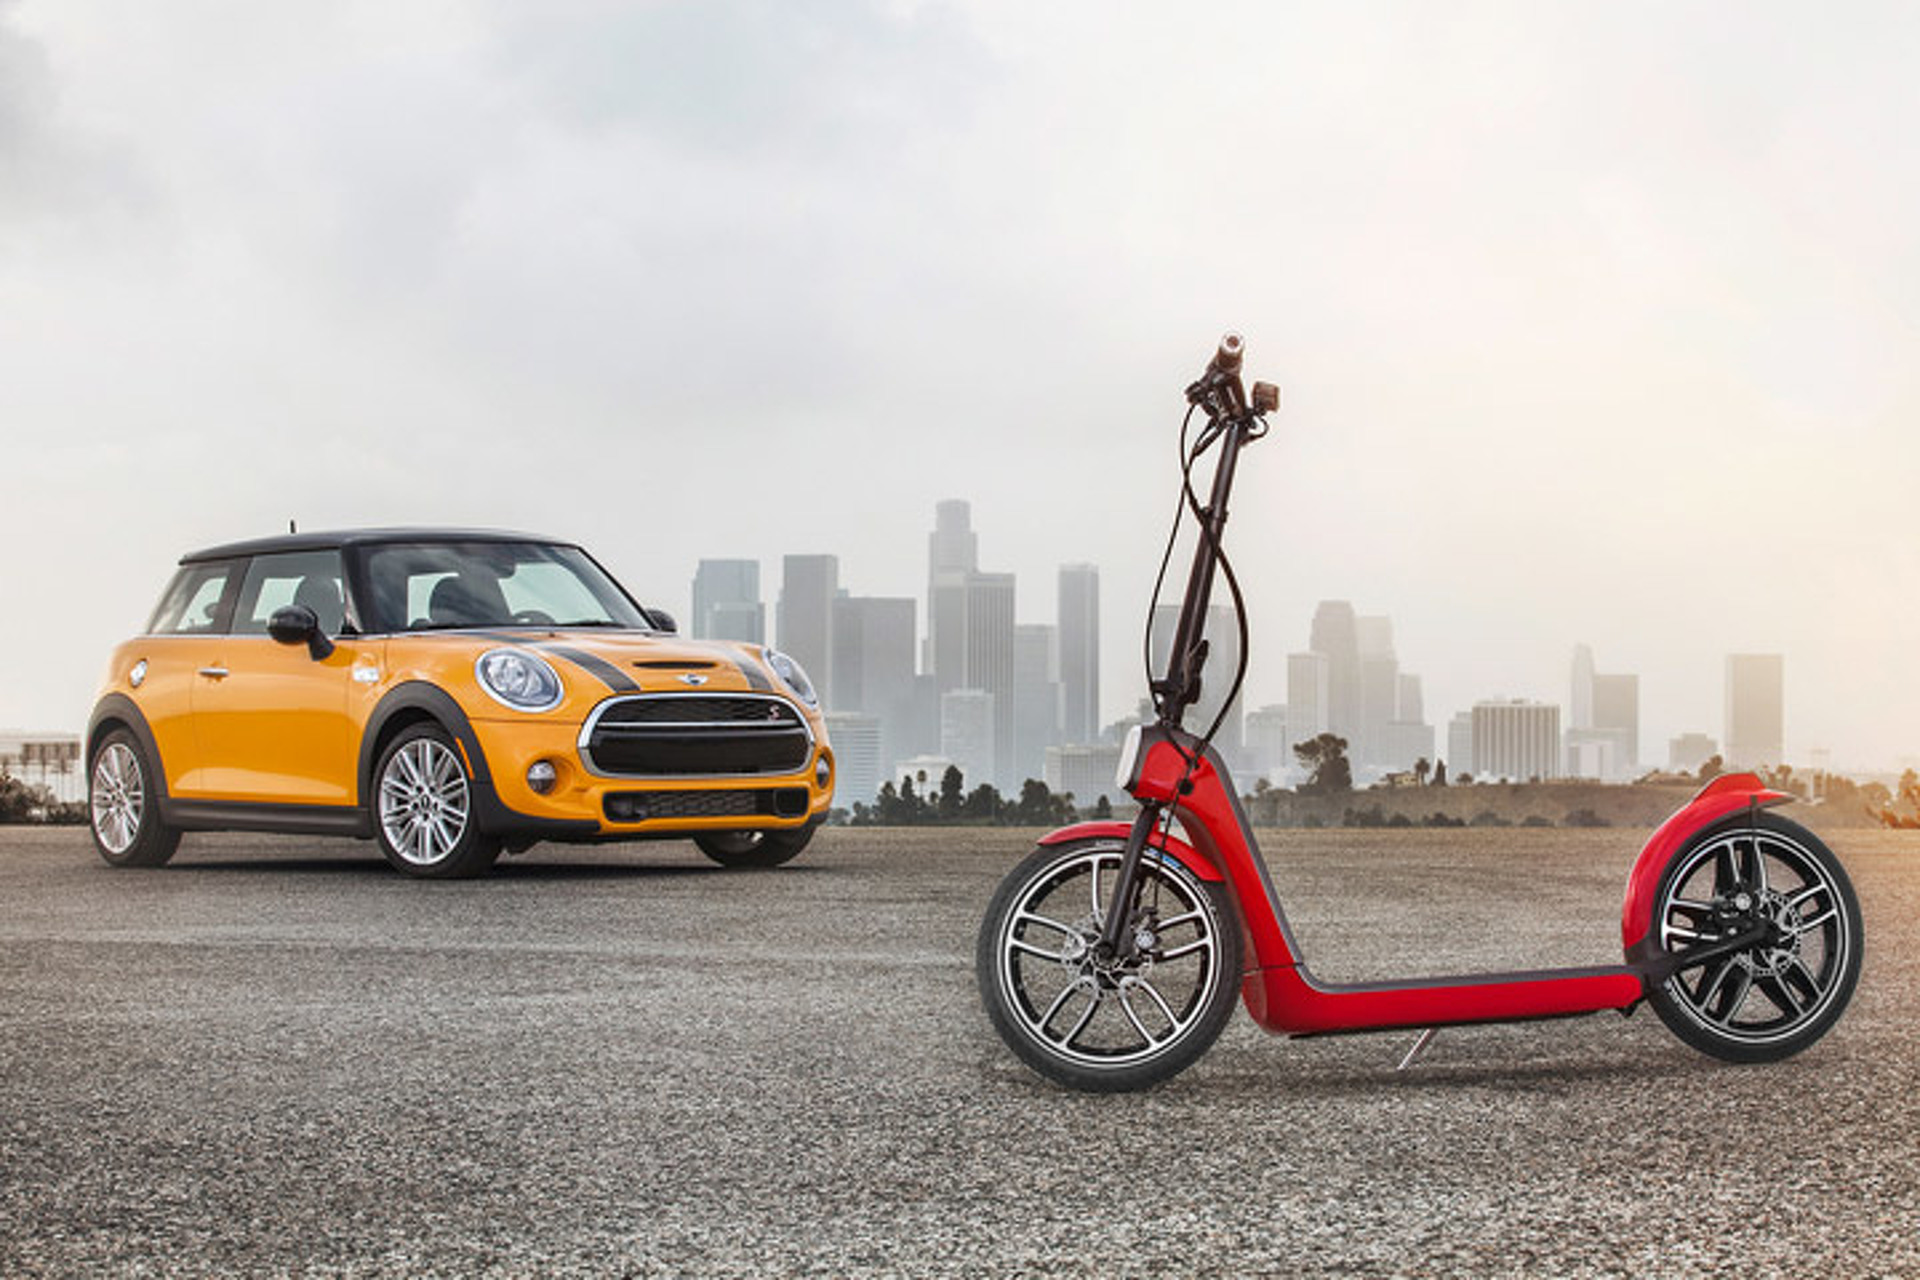 Mini Citysurfer Electric Scooter is a Range Extender for your Feet